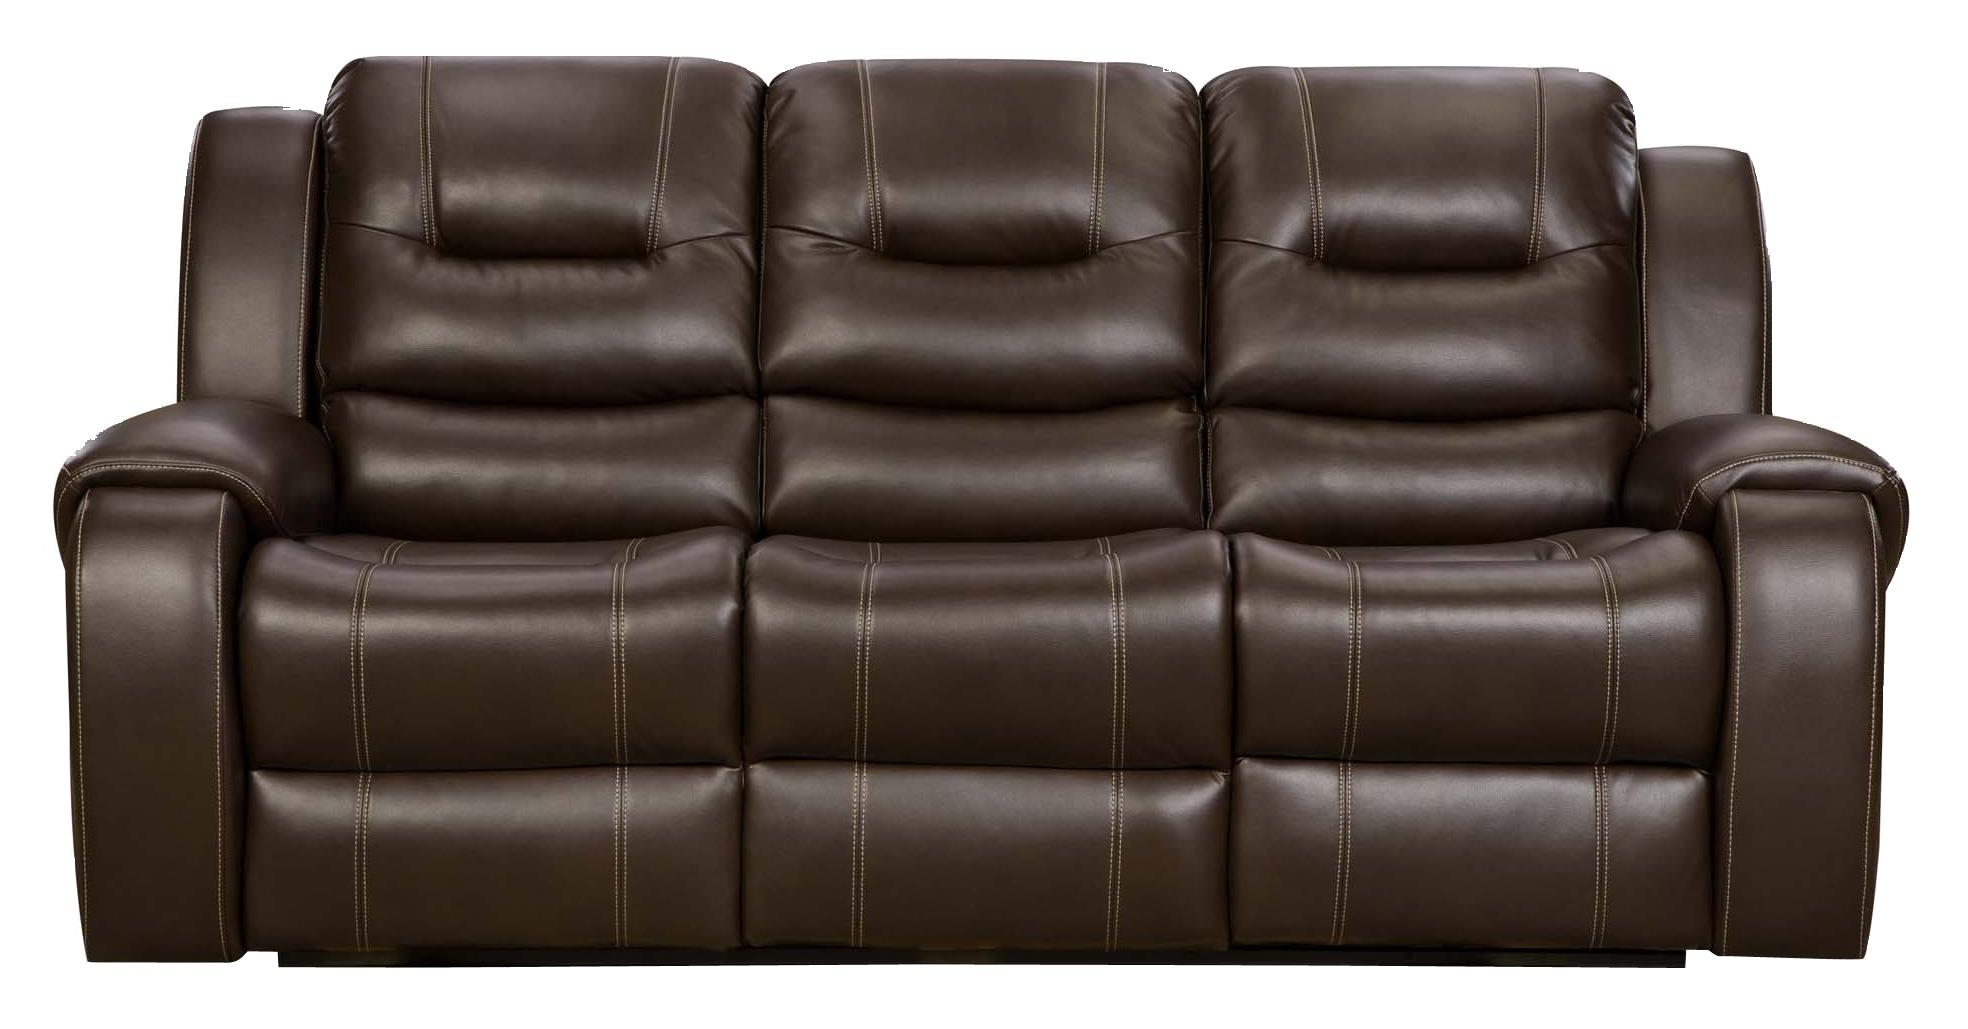 Corinthian Madison Reclining Sofa Item Number 71401 30 Made Out